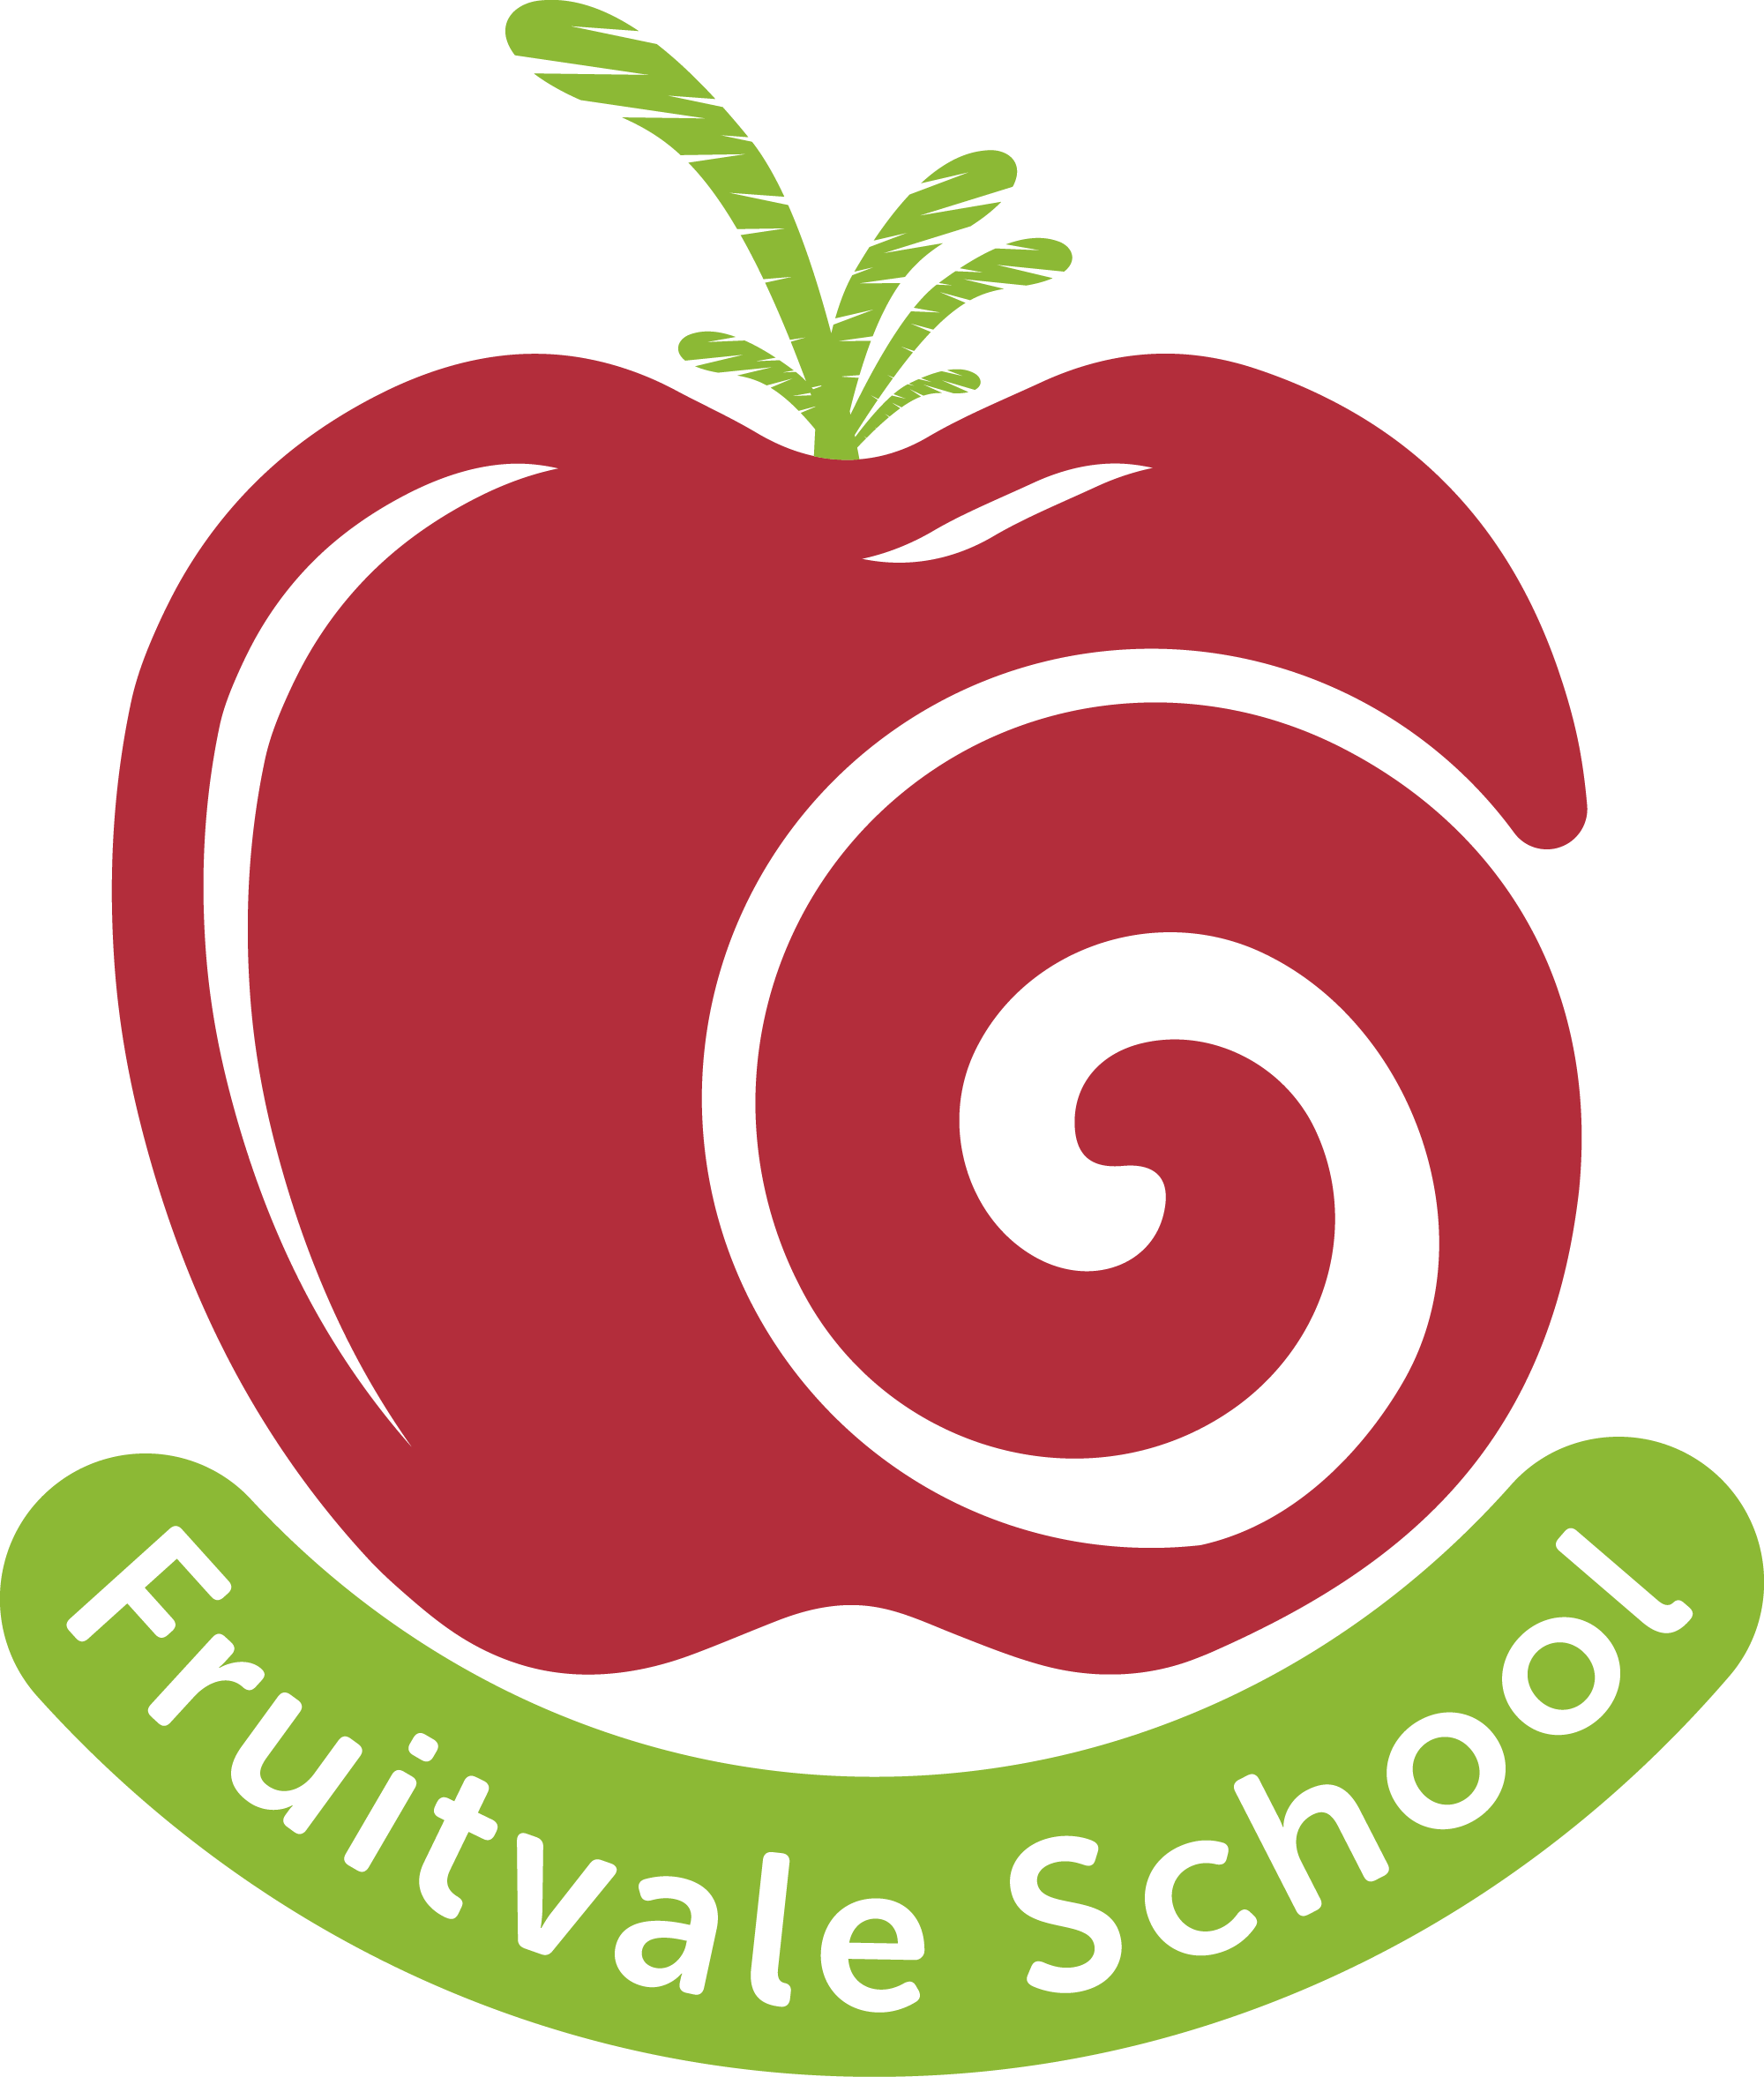 Fruitvale School Brand